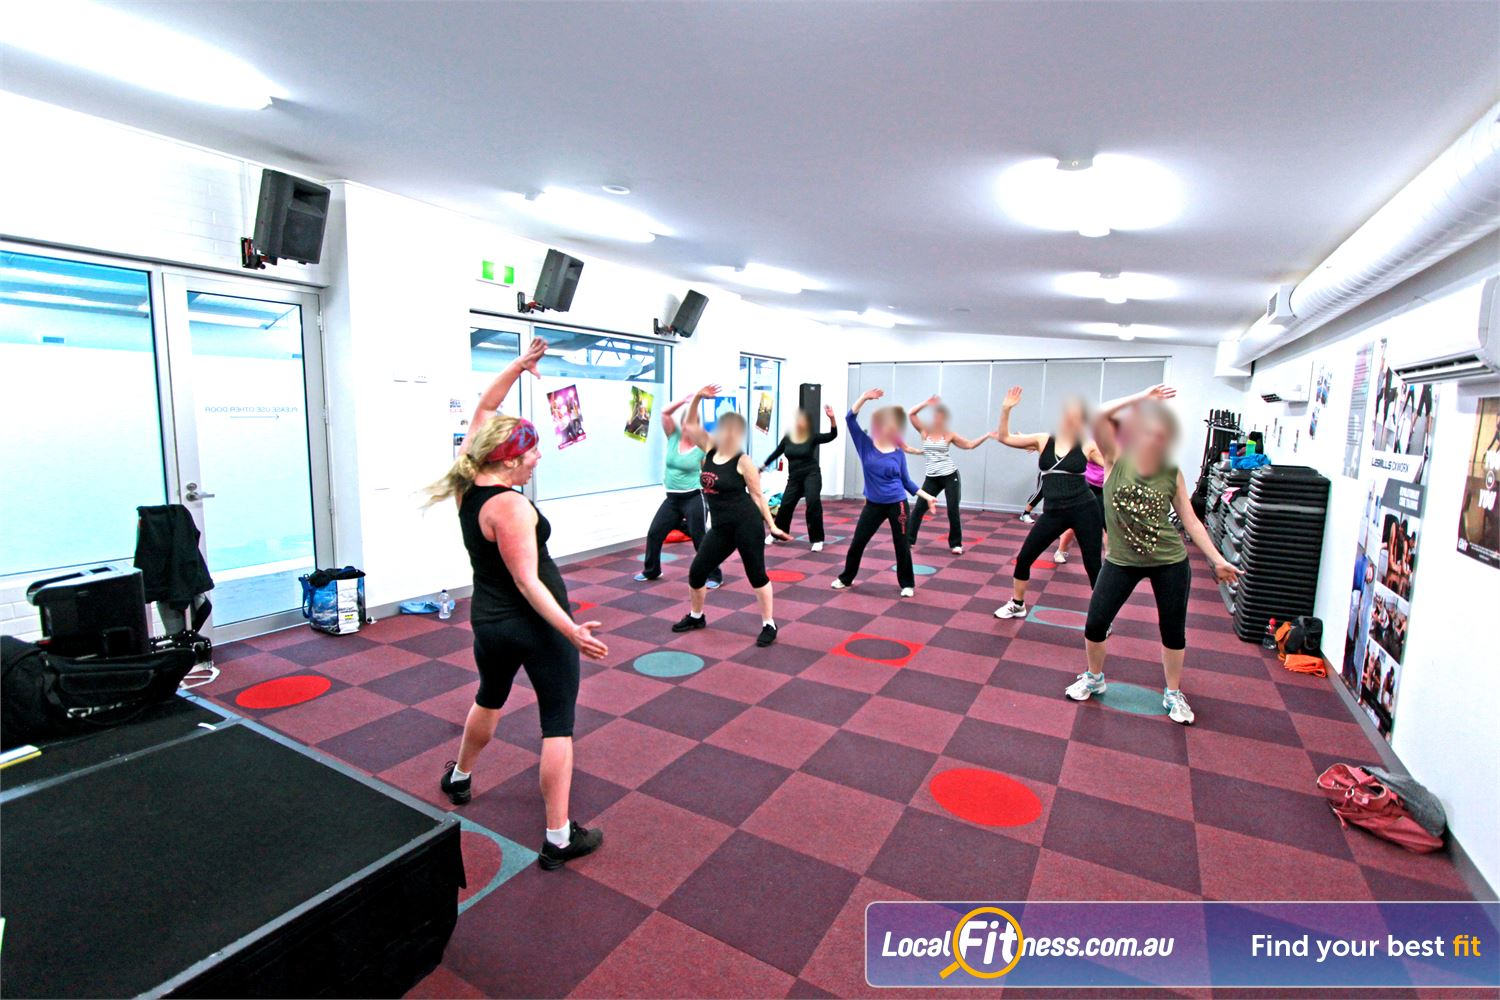 Monbulk Aquatic Centre Monbulk Popular classes inc. Yoga, Pilates and Zumba.